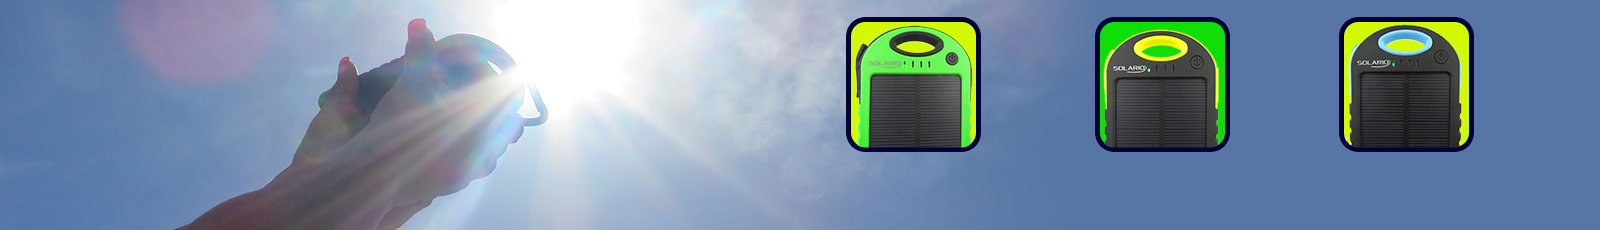 solario solar cell phone charger power bank